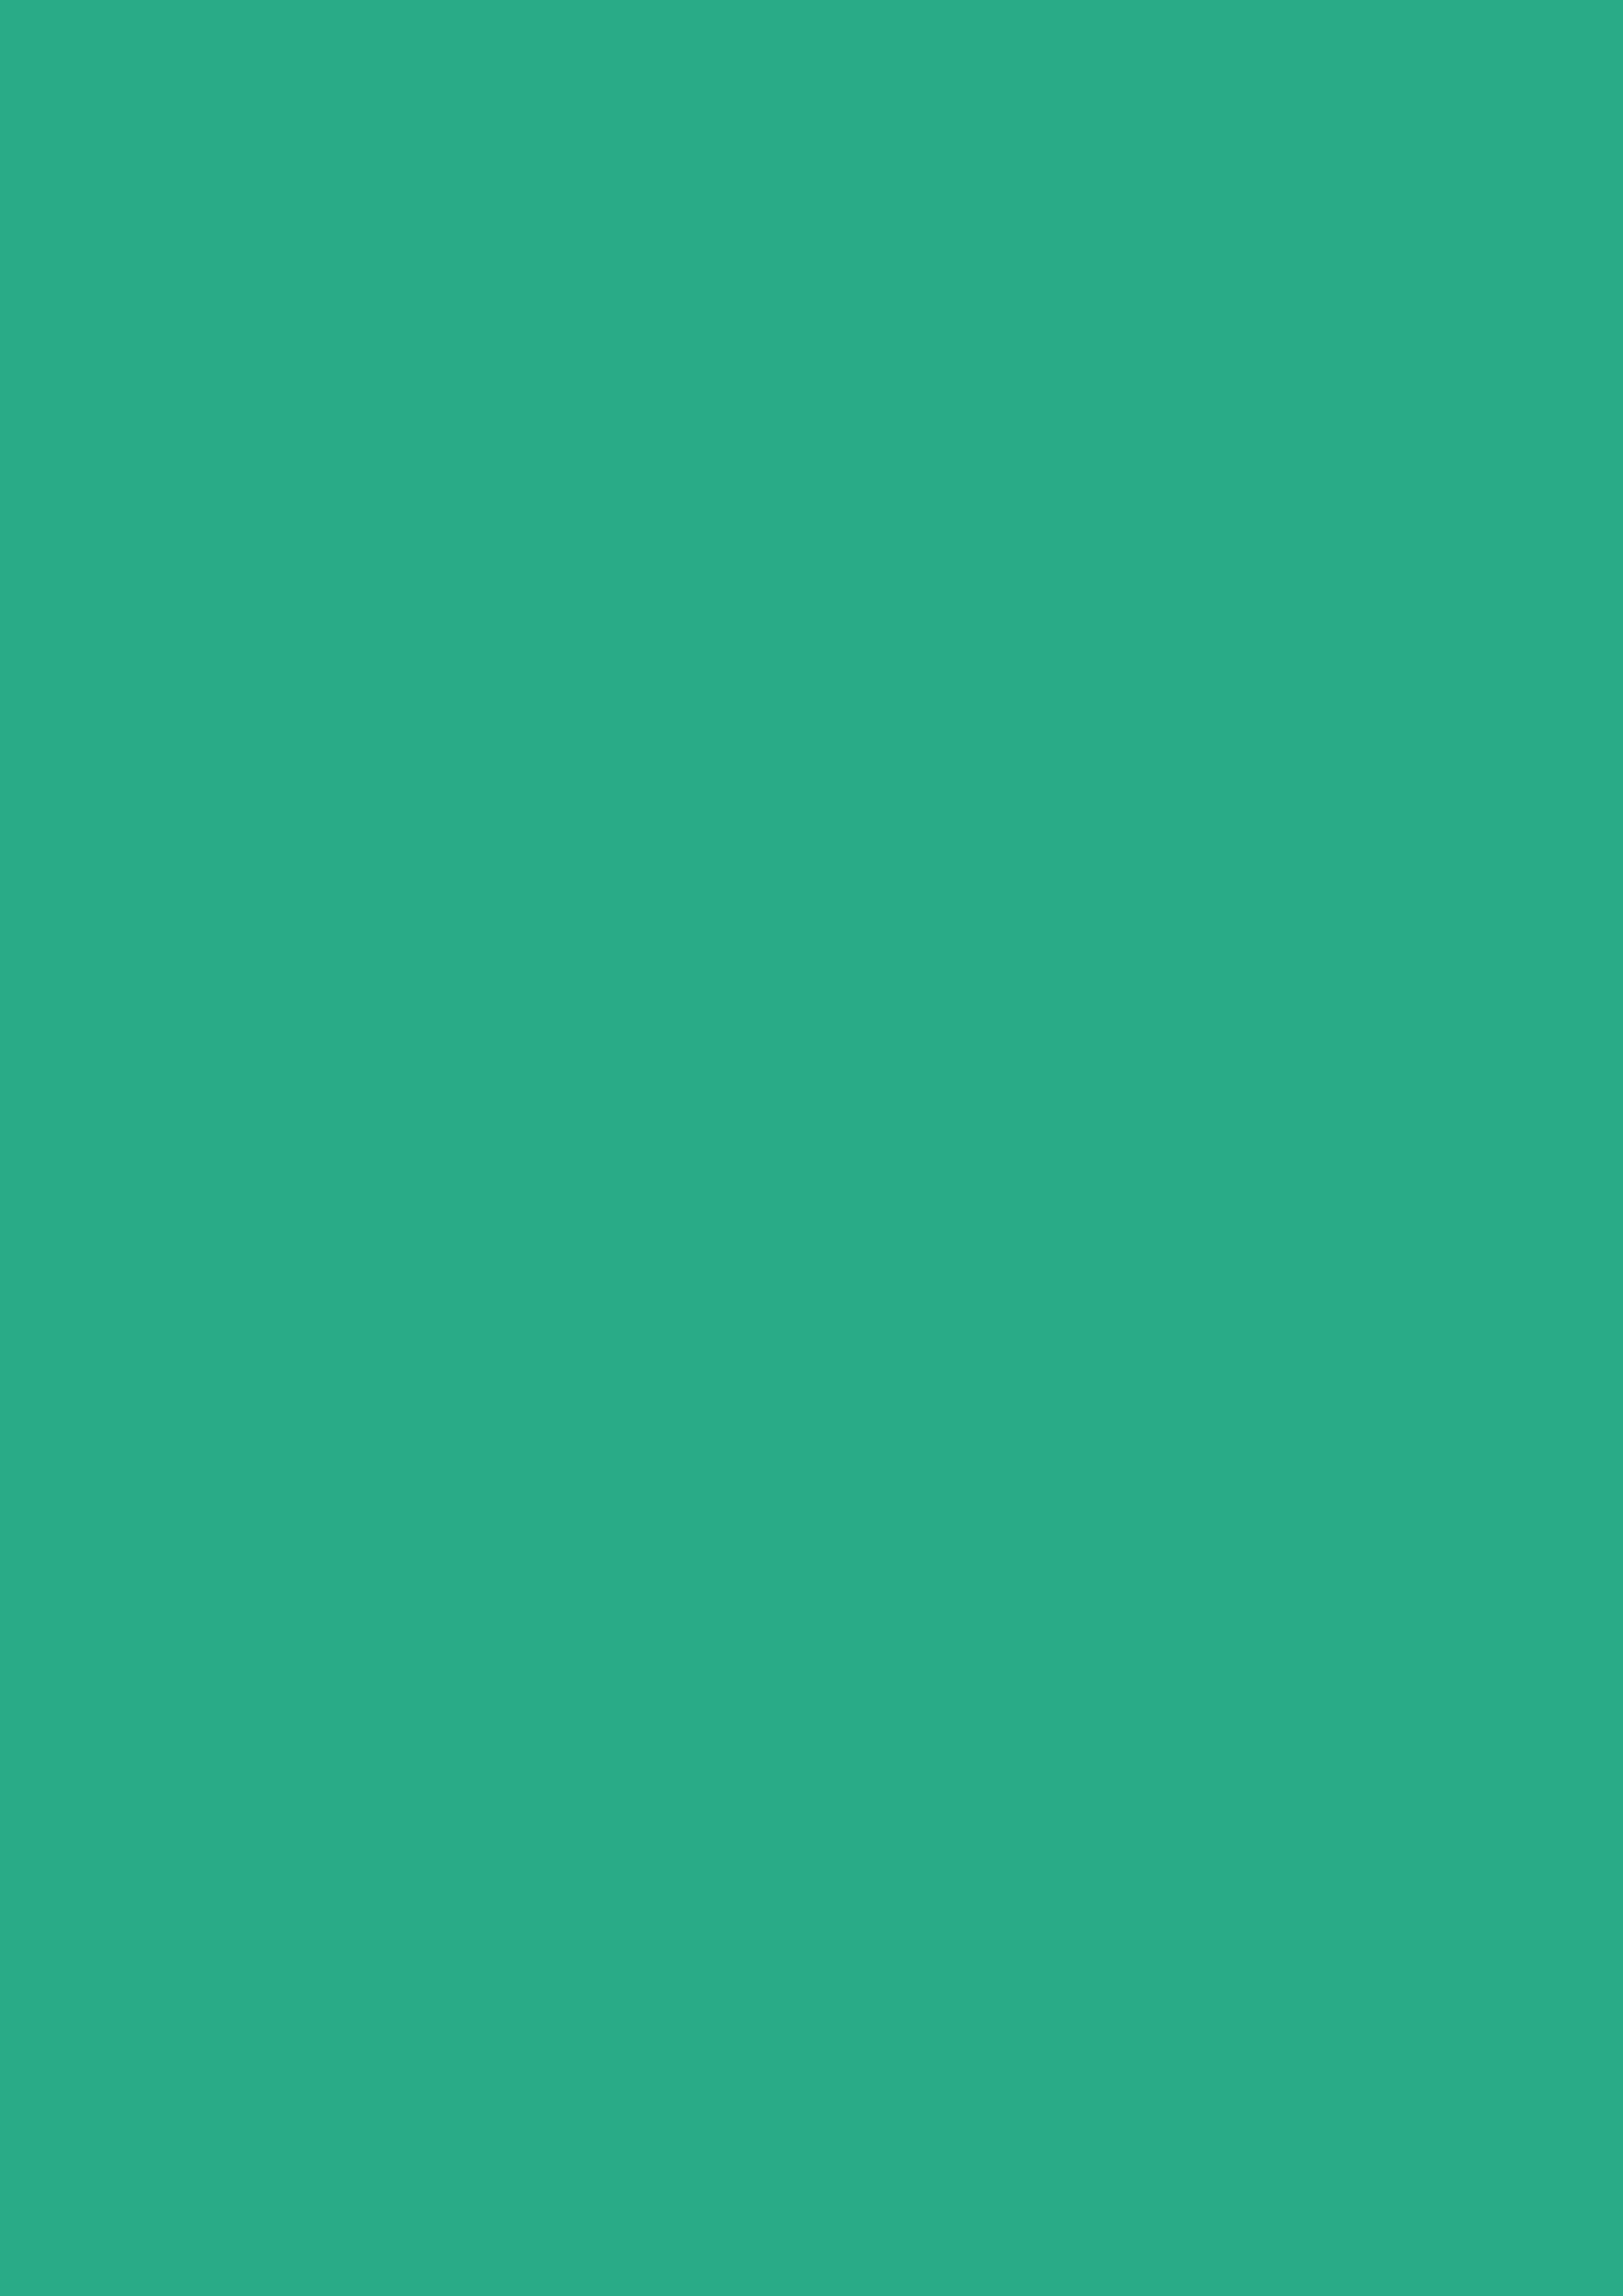 2480x3508 Jungle Green Solid Color Background